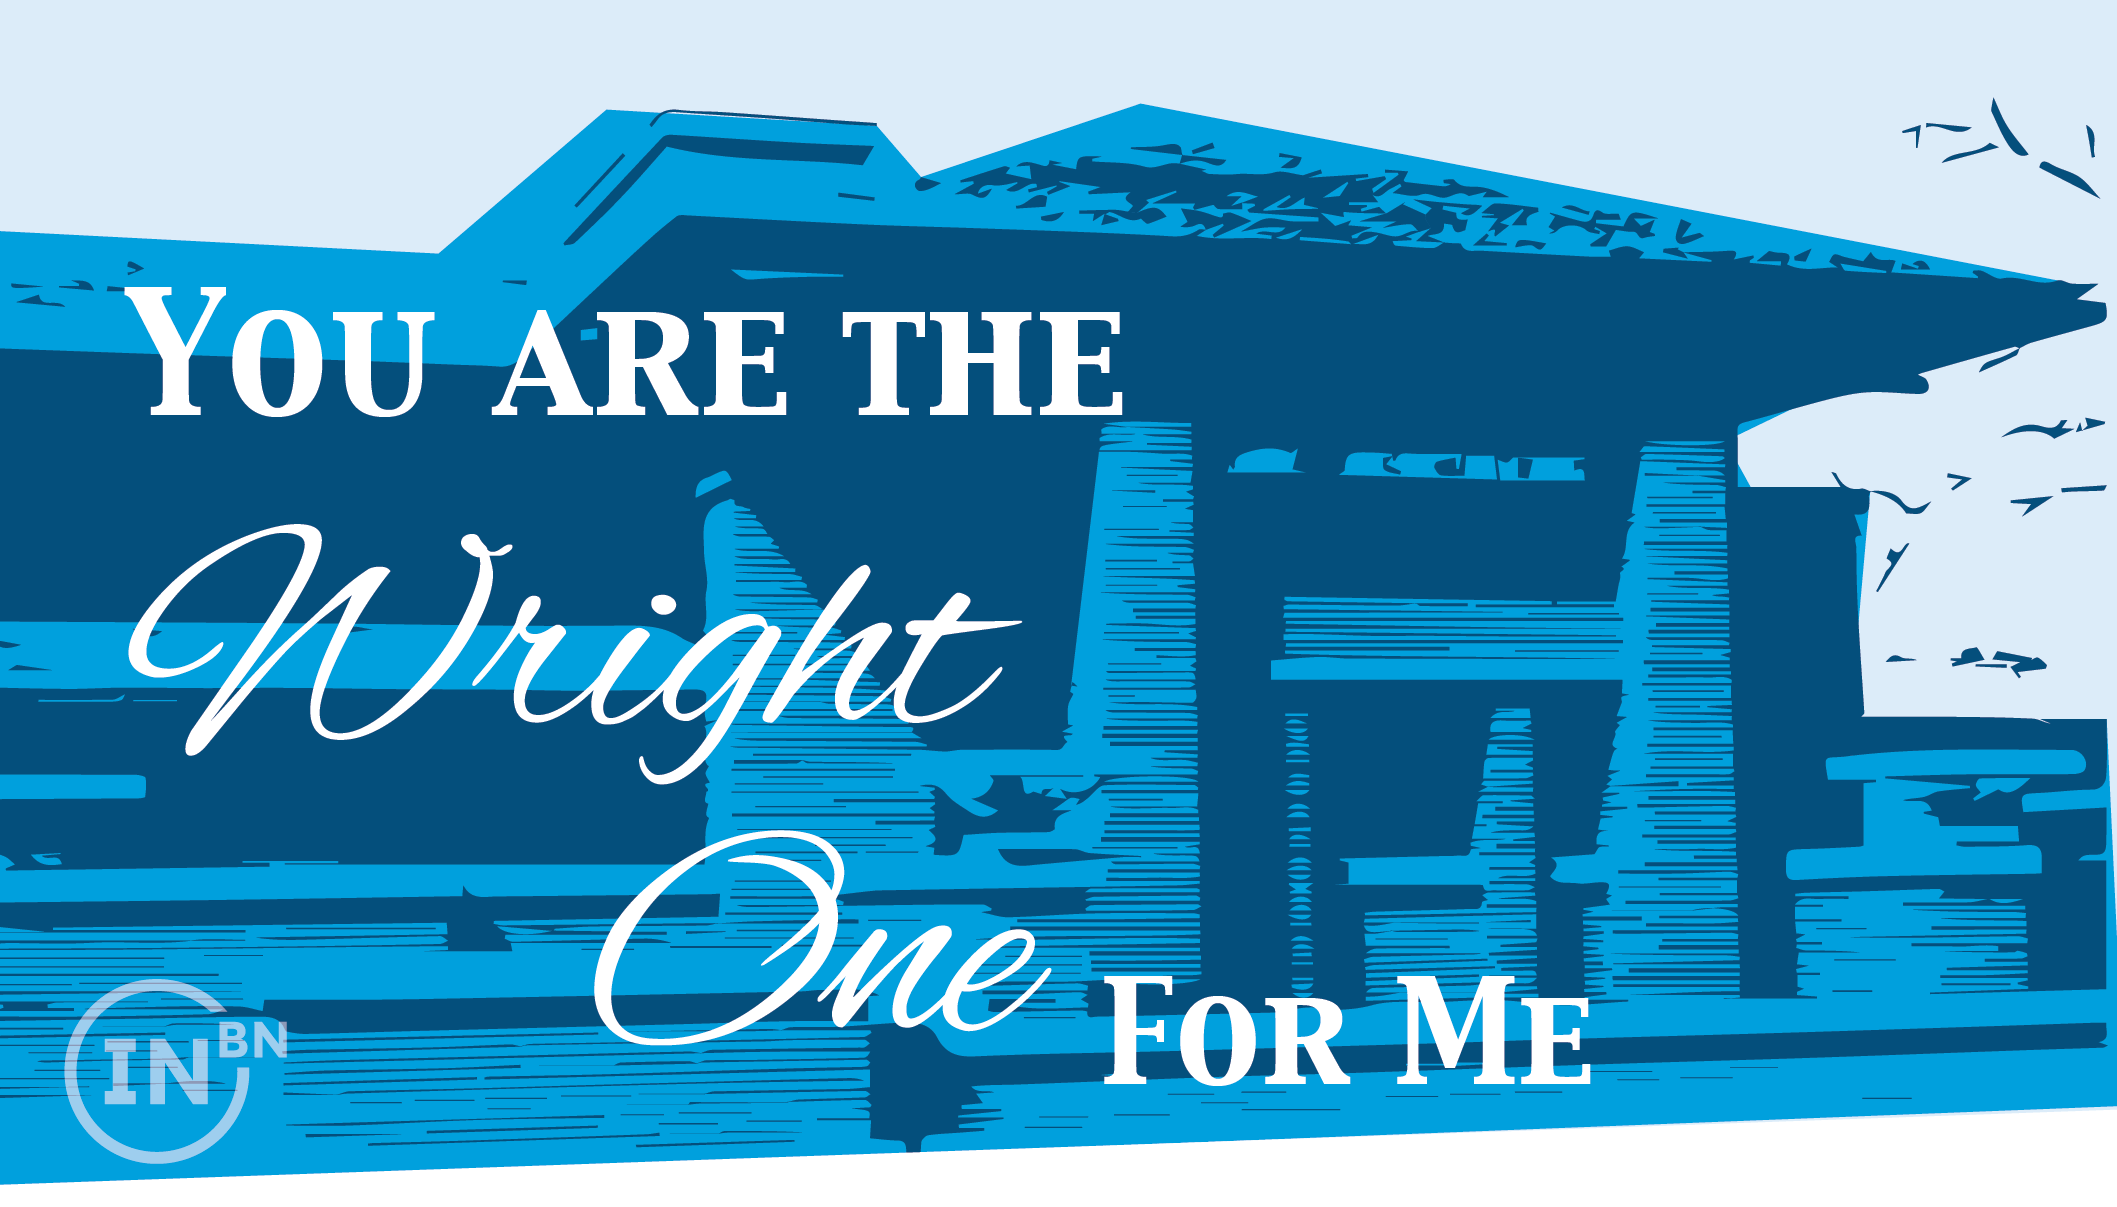 You are the Wright one for me.